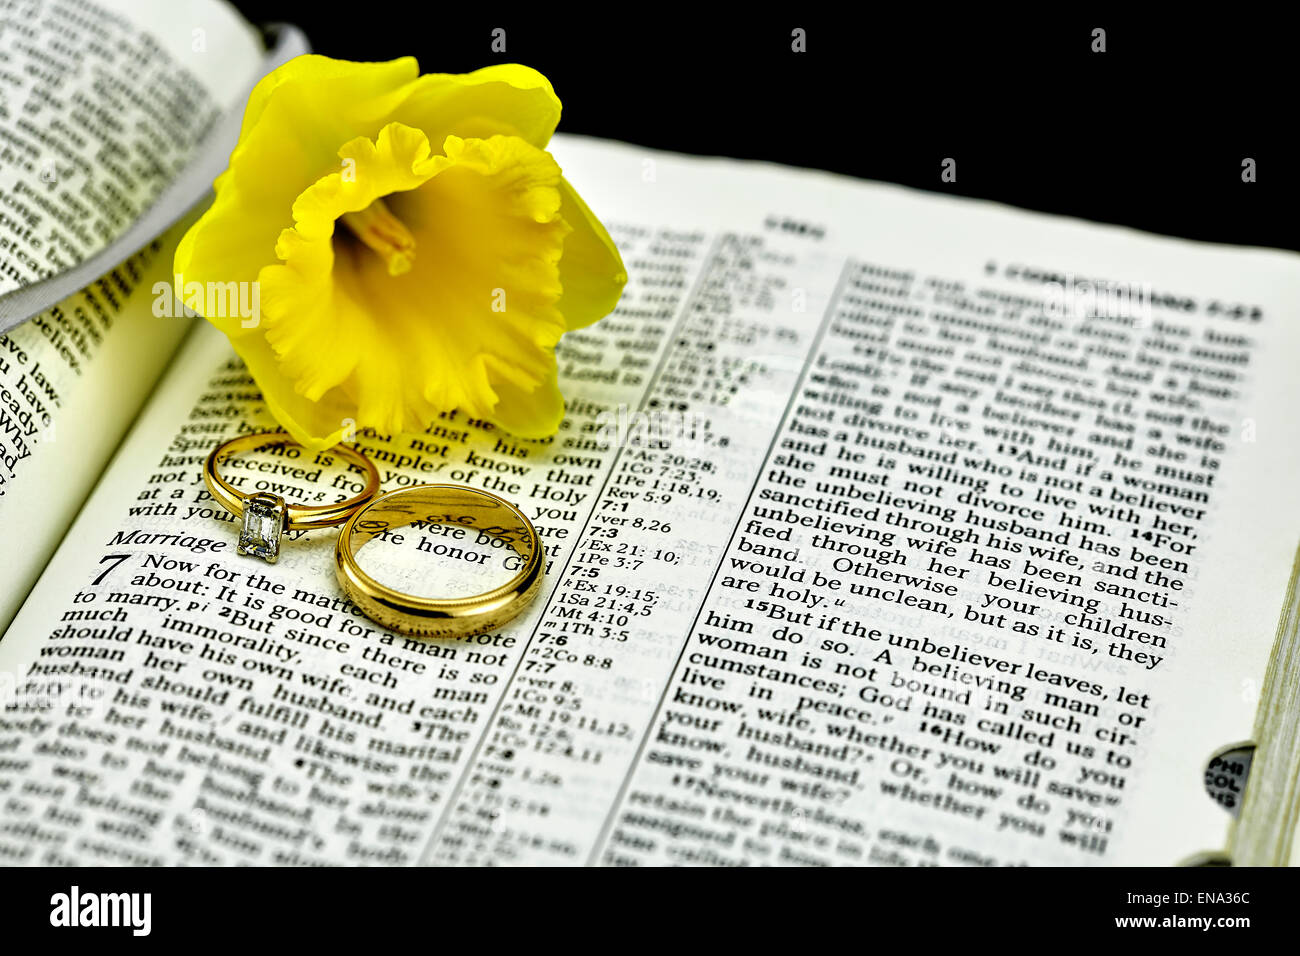 photo alamy rose wedding rings bible stock scripture